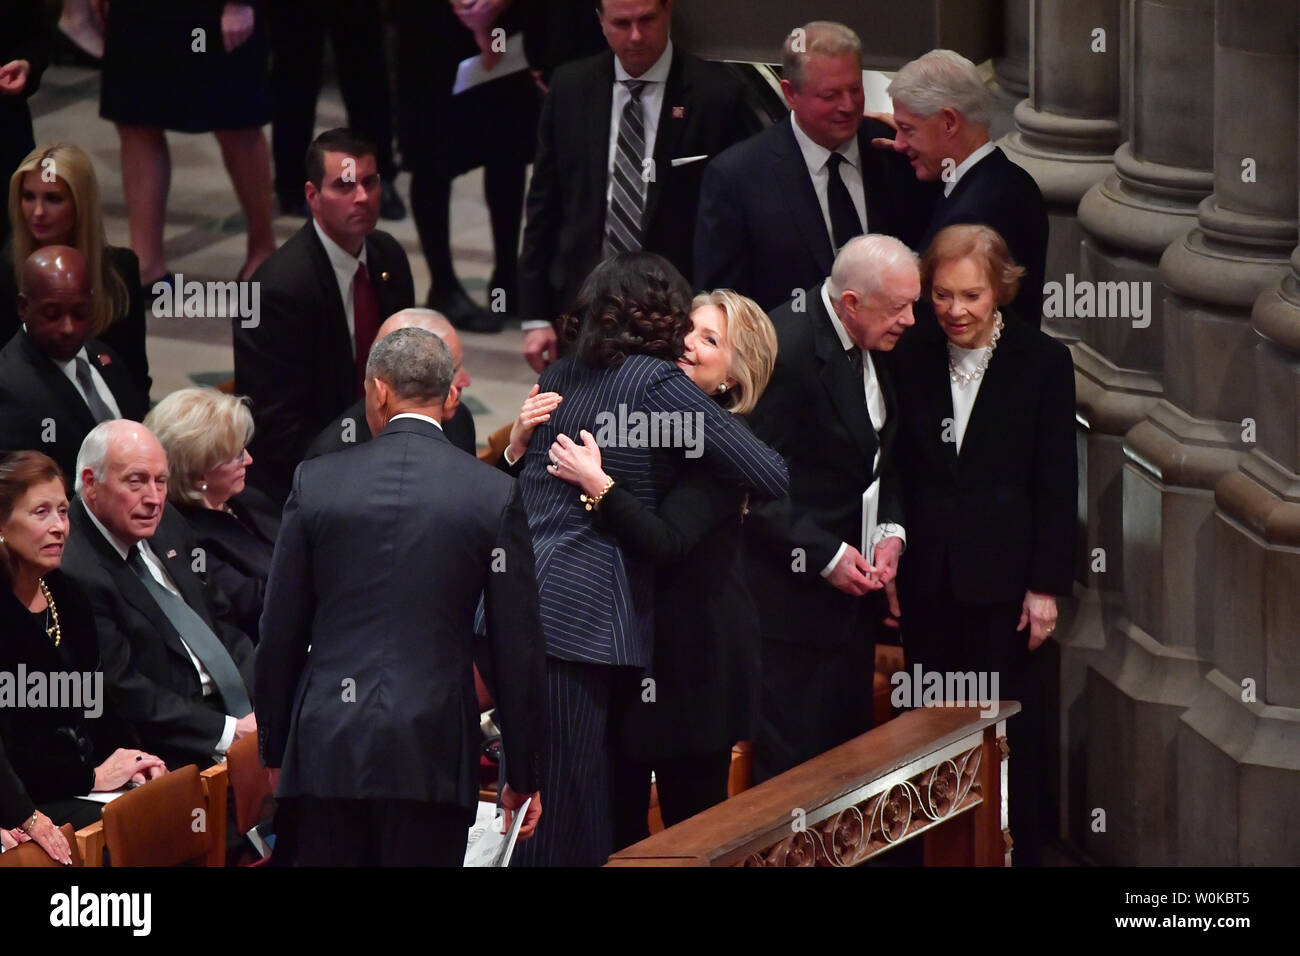 Hillary Clinton hugs Michelle Obama as former presidents and spouses assemble at the funeral of President George H.W. Bush at the National Cathedral in Washington D.C. on December 5, 2018. At right, Jimmy Carter and his wife Rosalynn talk in front of Bill Clinton chating with Al Gore.  Photo by Kevin Dietsch/UPI Stock Photo